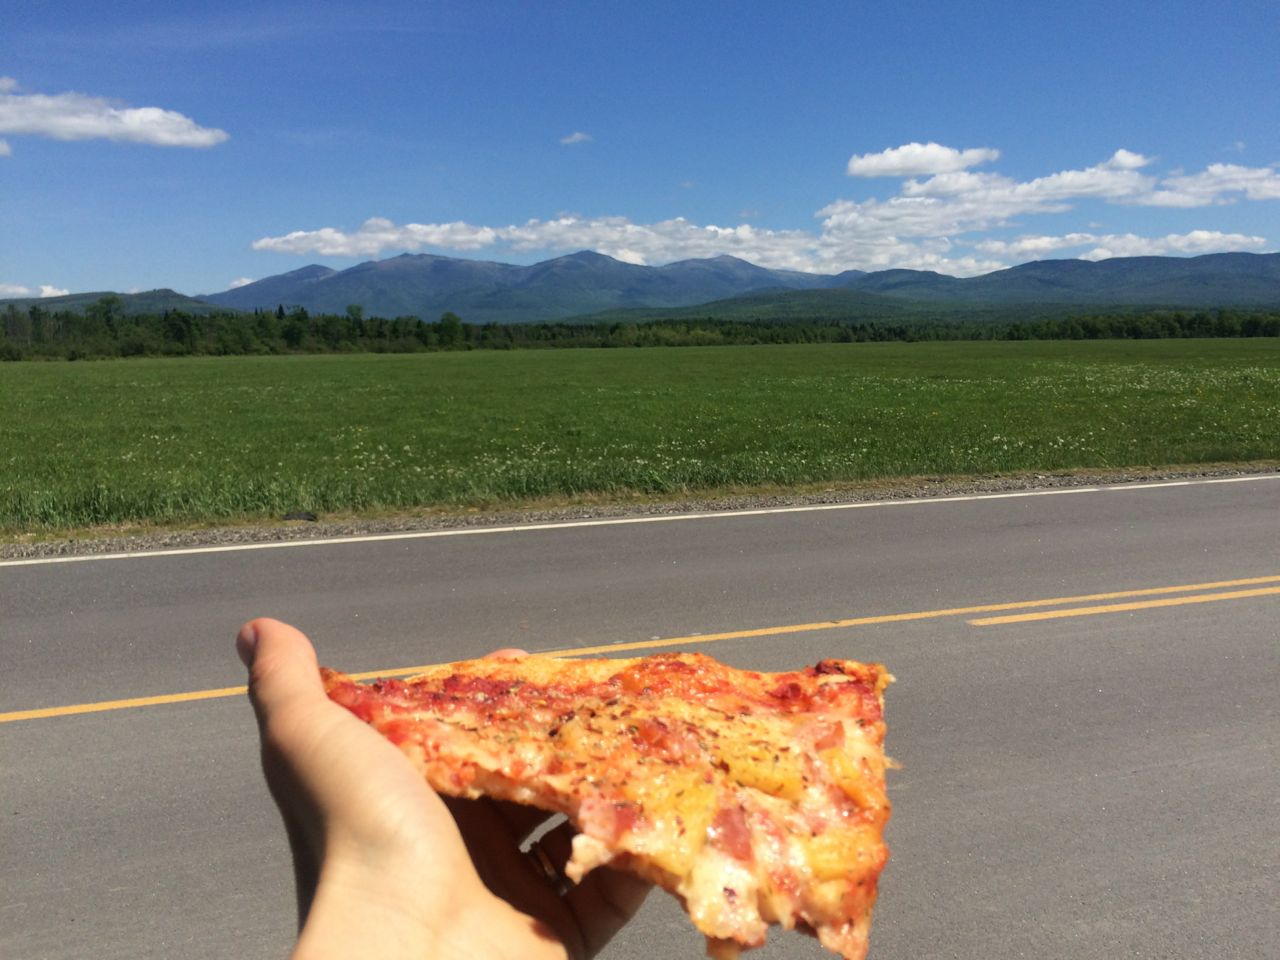 Day 5 - Wow, what a spectacular day along the Presidential Range between Lancaster and Bretton Woods, NH. I had vectored off course to find cell service, leaving Dad with a trek angel (awesome support person) and ran into this piece of pizza. (smile) On the way back to the trek route, I stopped the car on the side of the road. It was magnificent. My iPhone didn't know whether to focus on the pizza or the mountains. Neither did I. It was all awesome.